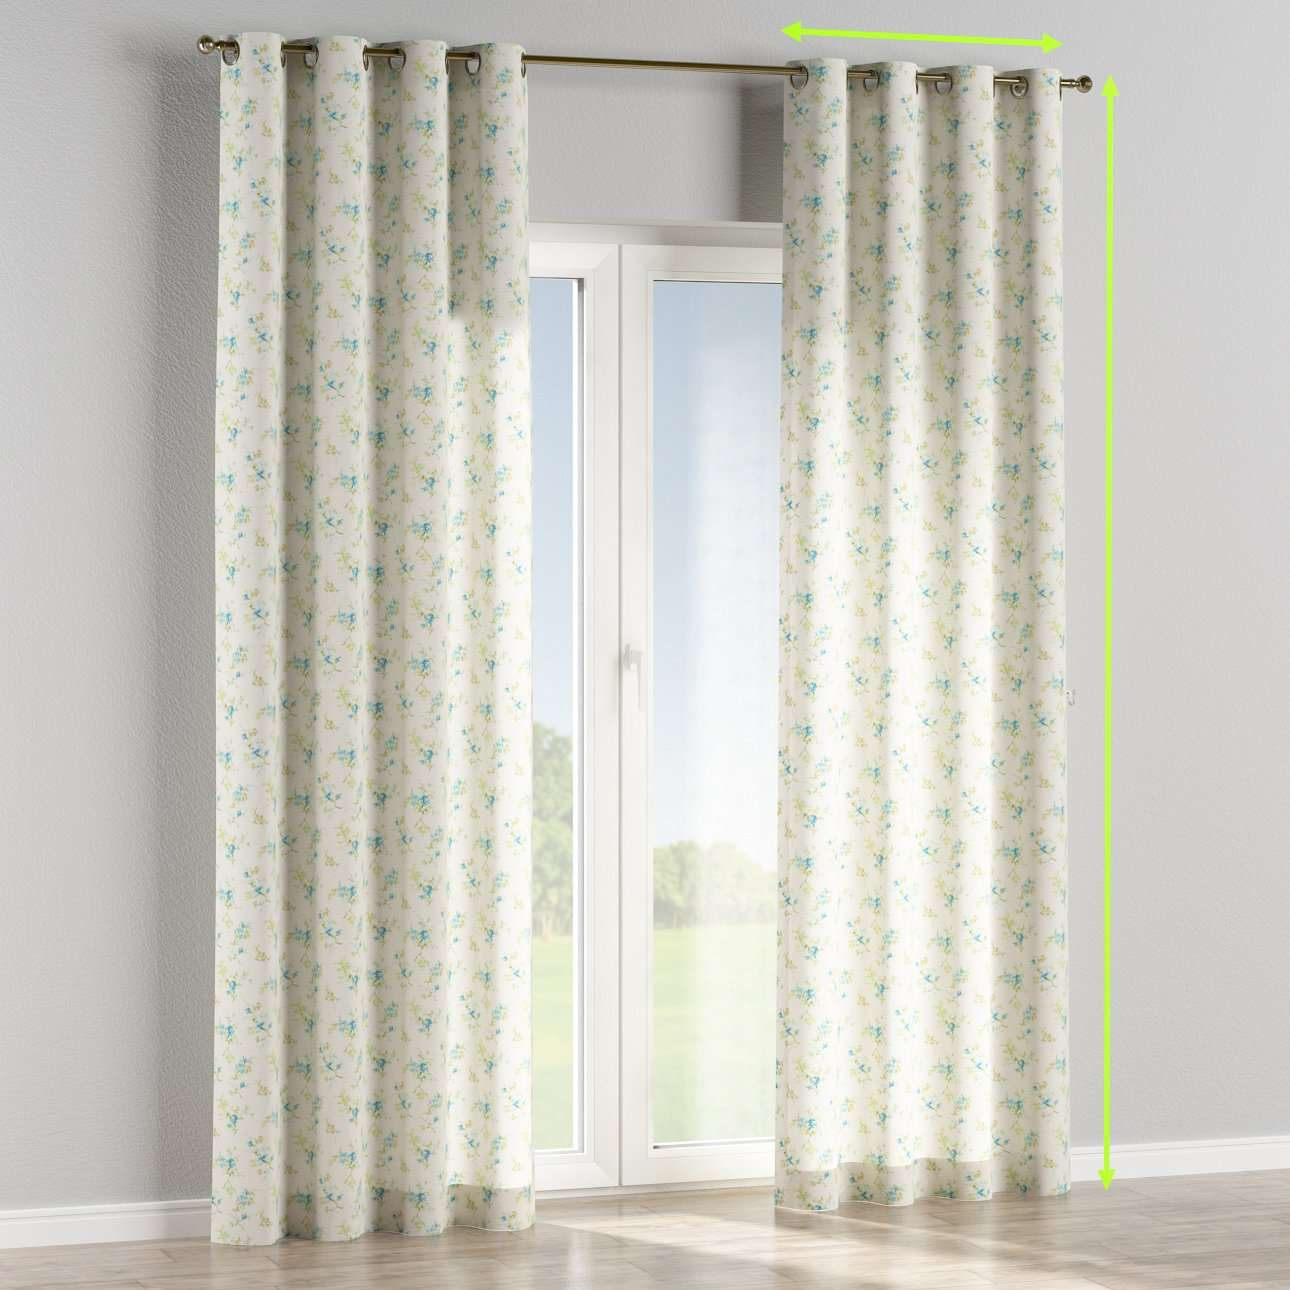 Eyelet lined curtains in collection Mirella, fabric: 141-16